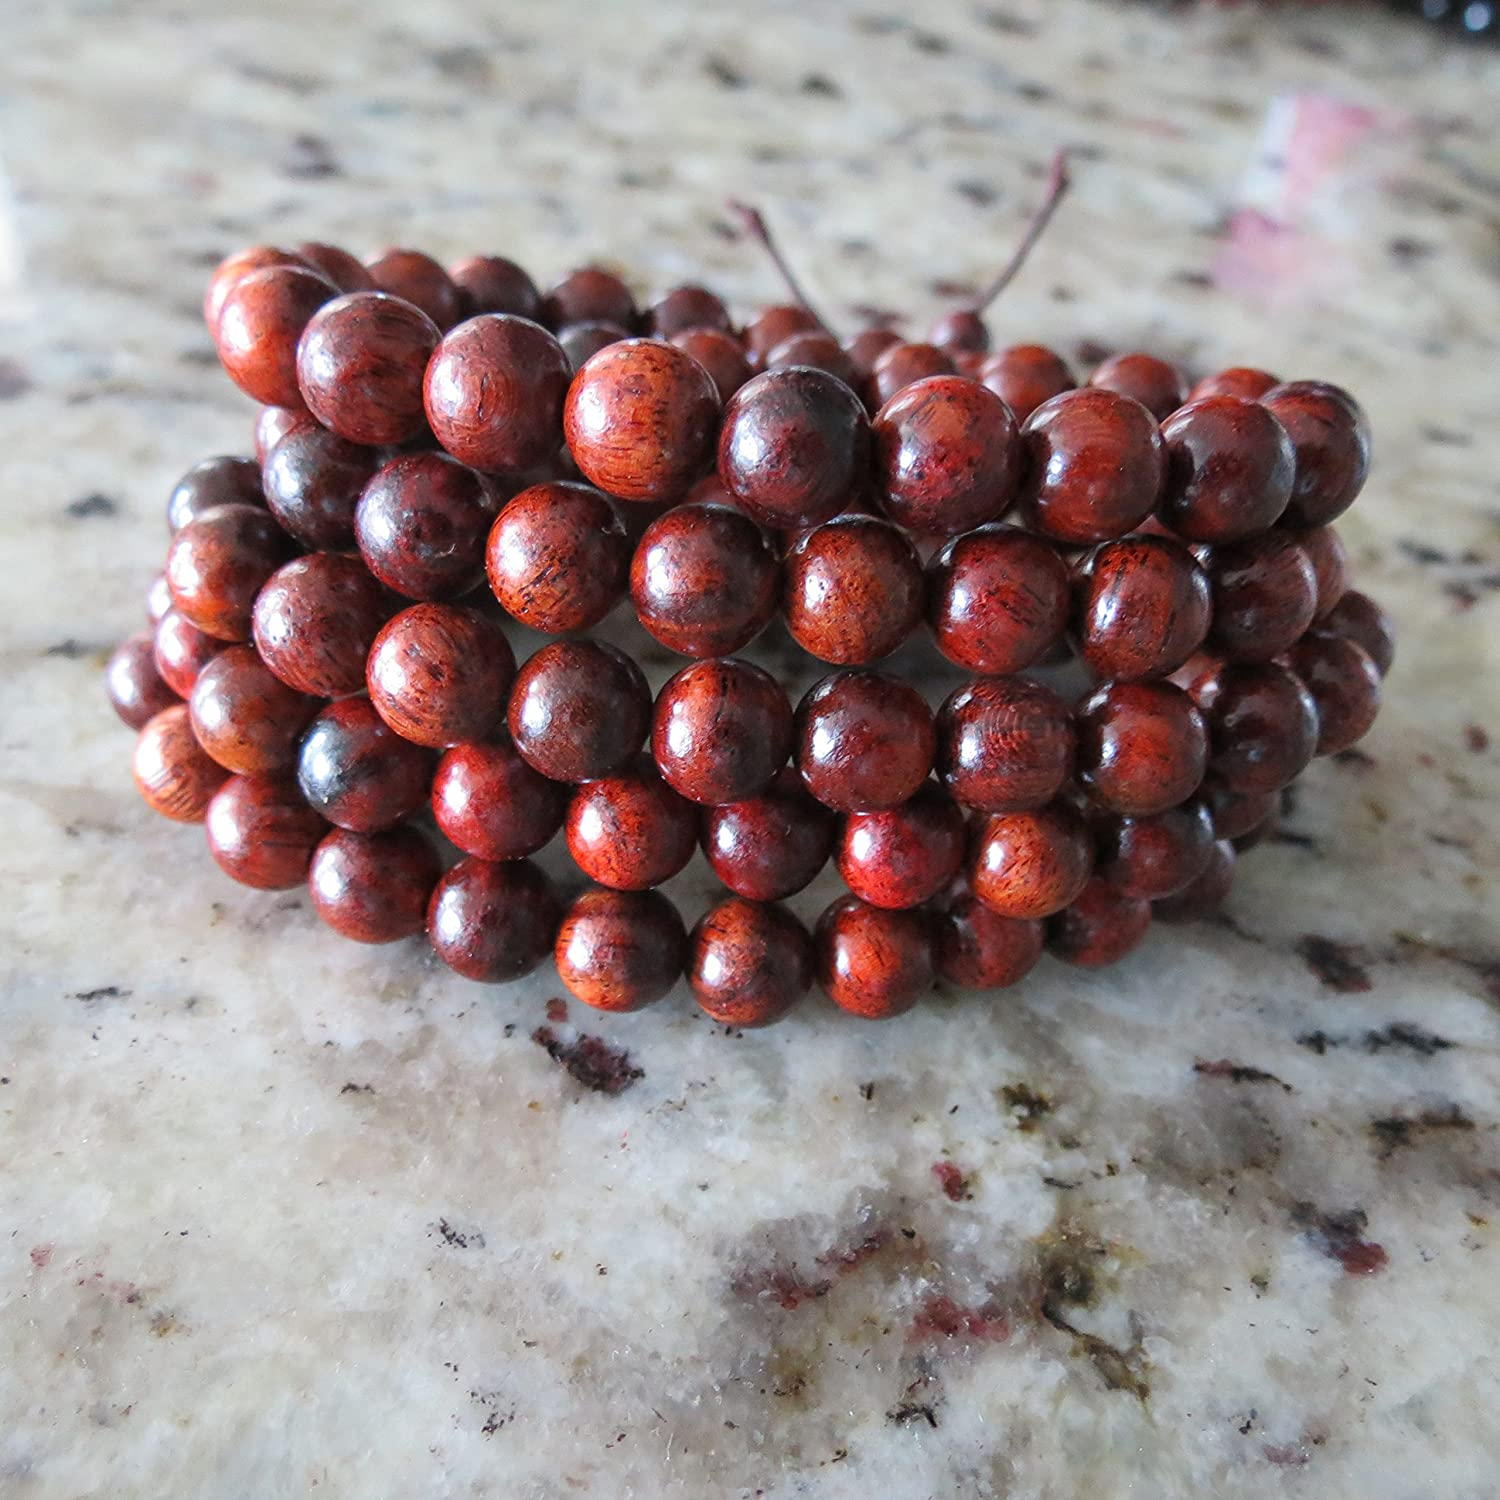 8mm*108 RoseWood(Color is more red) Beads Tibet Buddhist Hand Made Prayer Mala Miyallu (Ship from Canada)